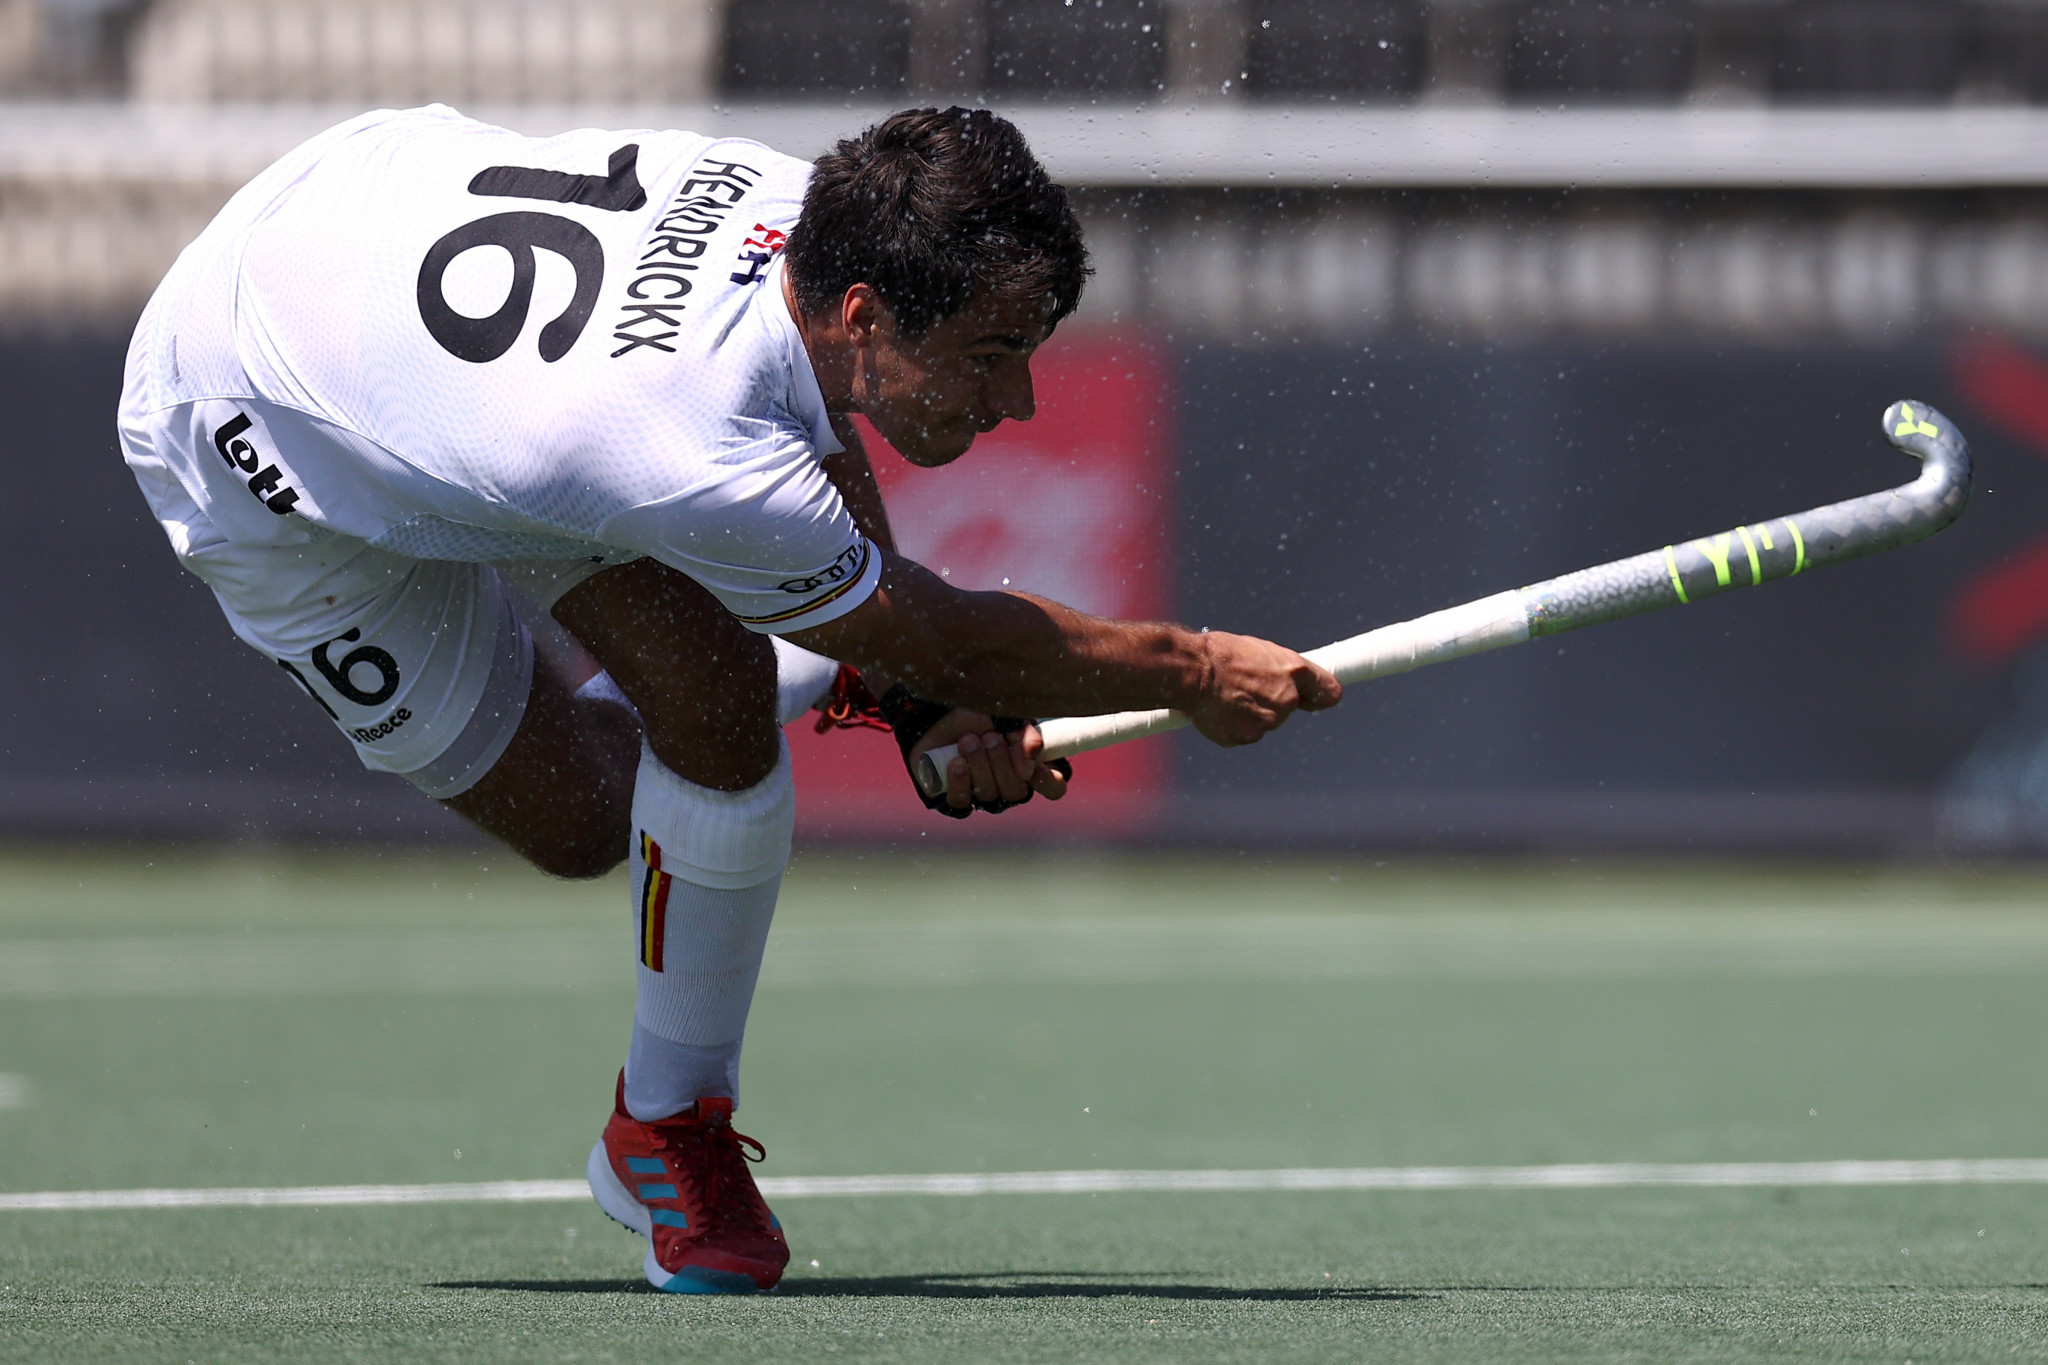 Alexander Hendrickx was the top scorer in the 2020-2021 Men's FIH Pro League with 11 goals ©Getty Images